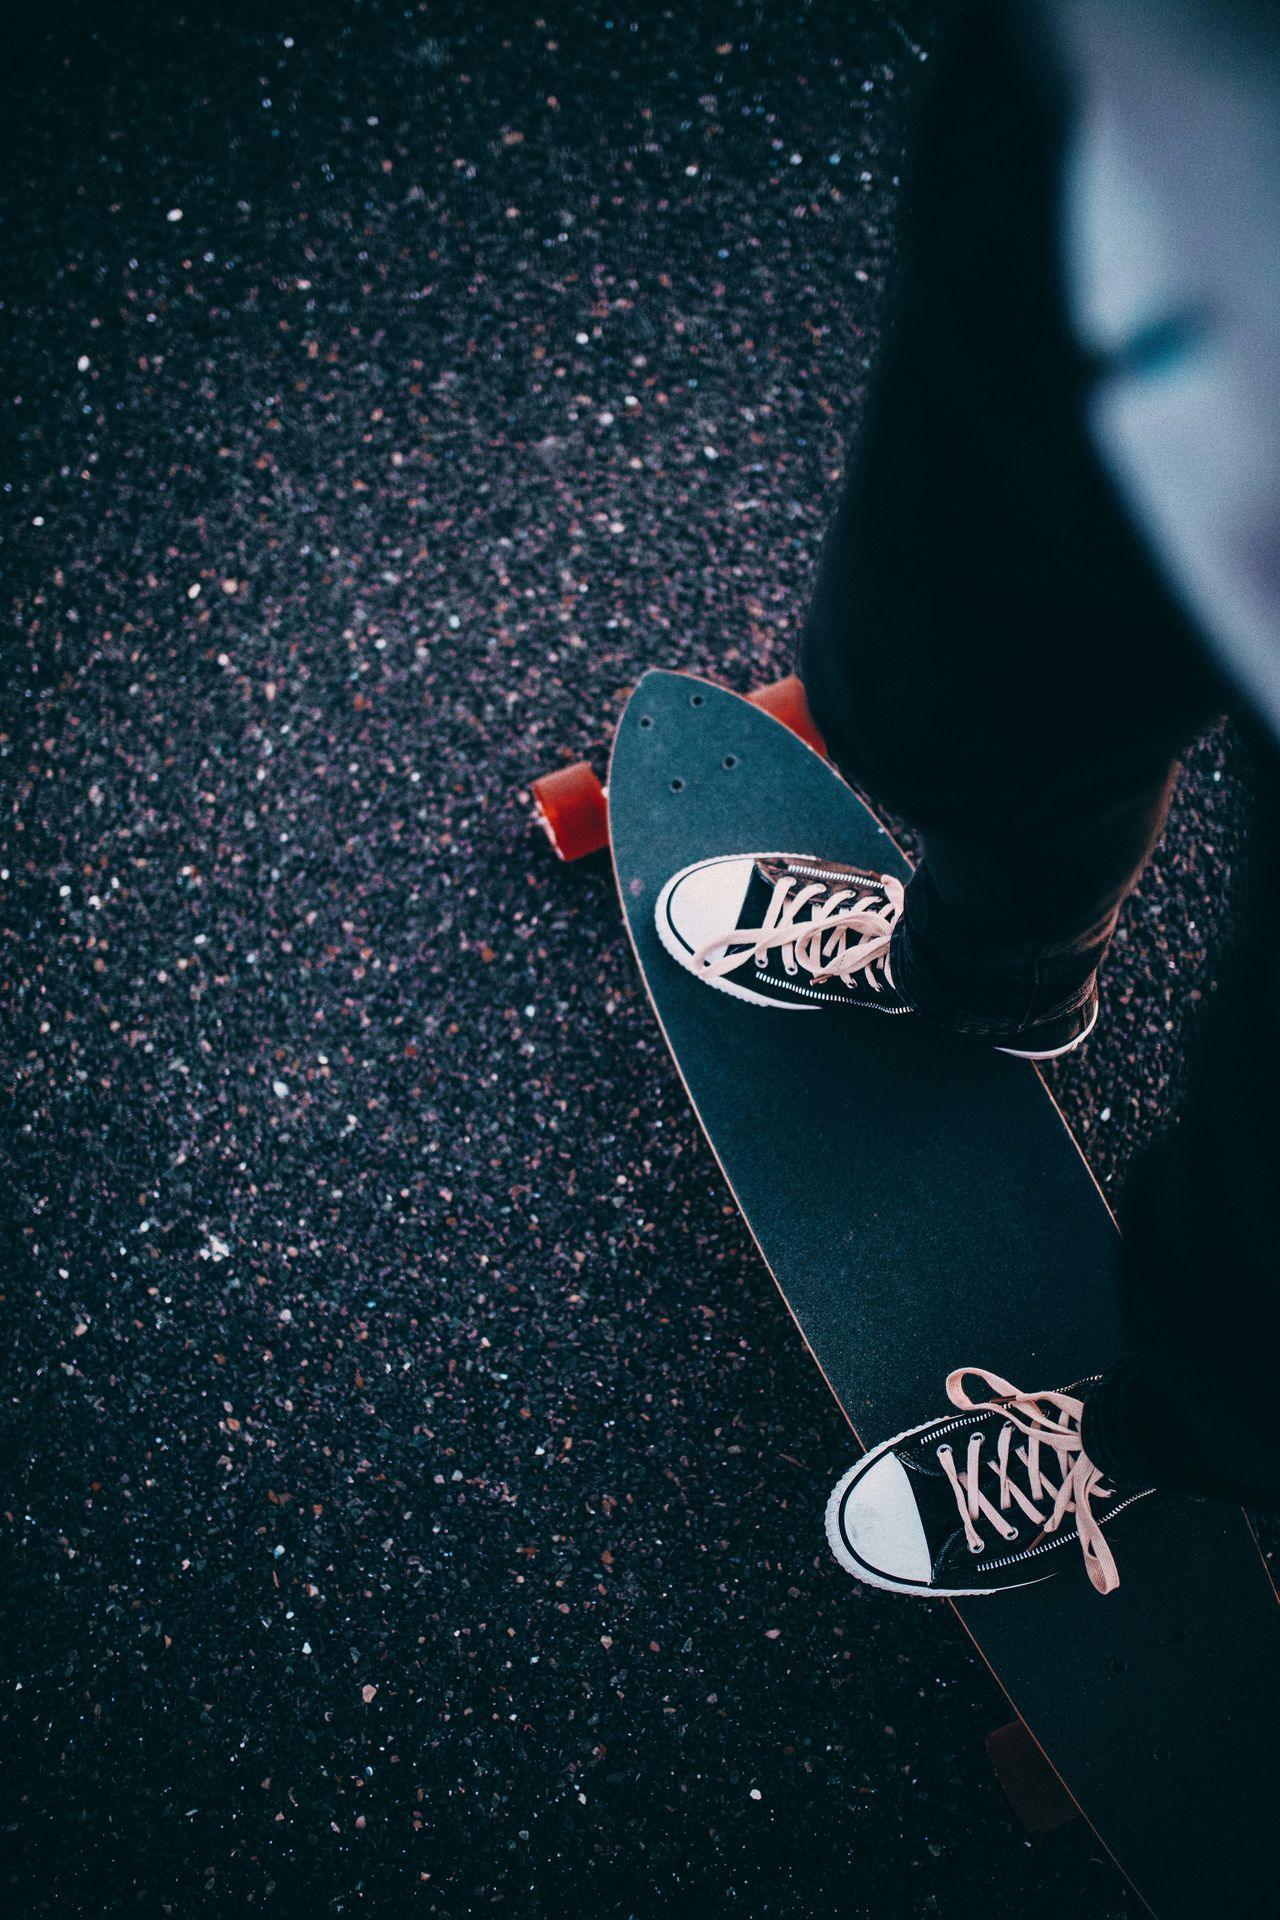 casual clothing Longboard longboarding longboards Man Promenade recreational pursuit skating sunset urban Fresh on Market 2017 out of the box